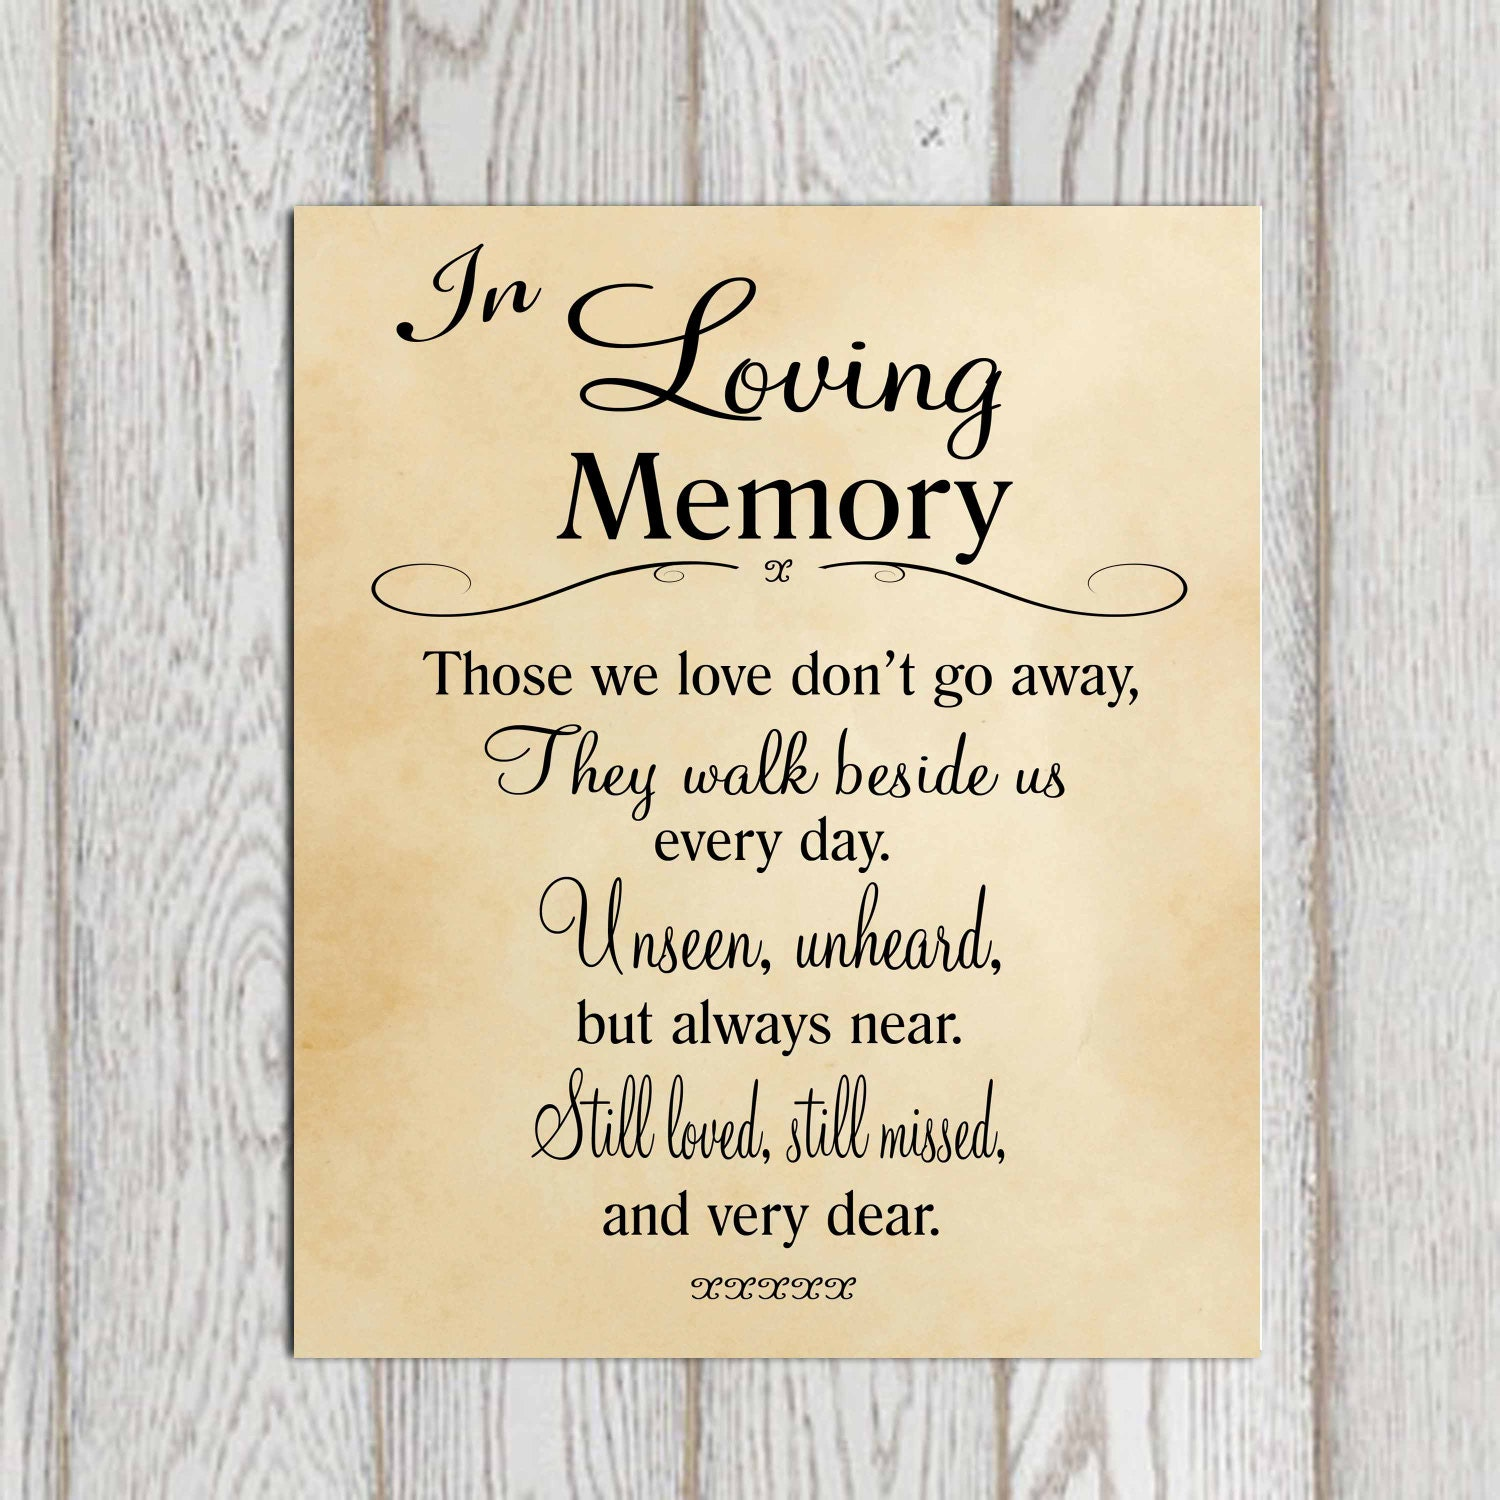 In Loving Memory Sayings And Quotes Cool In Loving Memory Printable Memorial Table Wedding Memorial